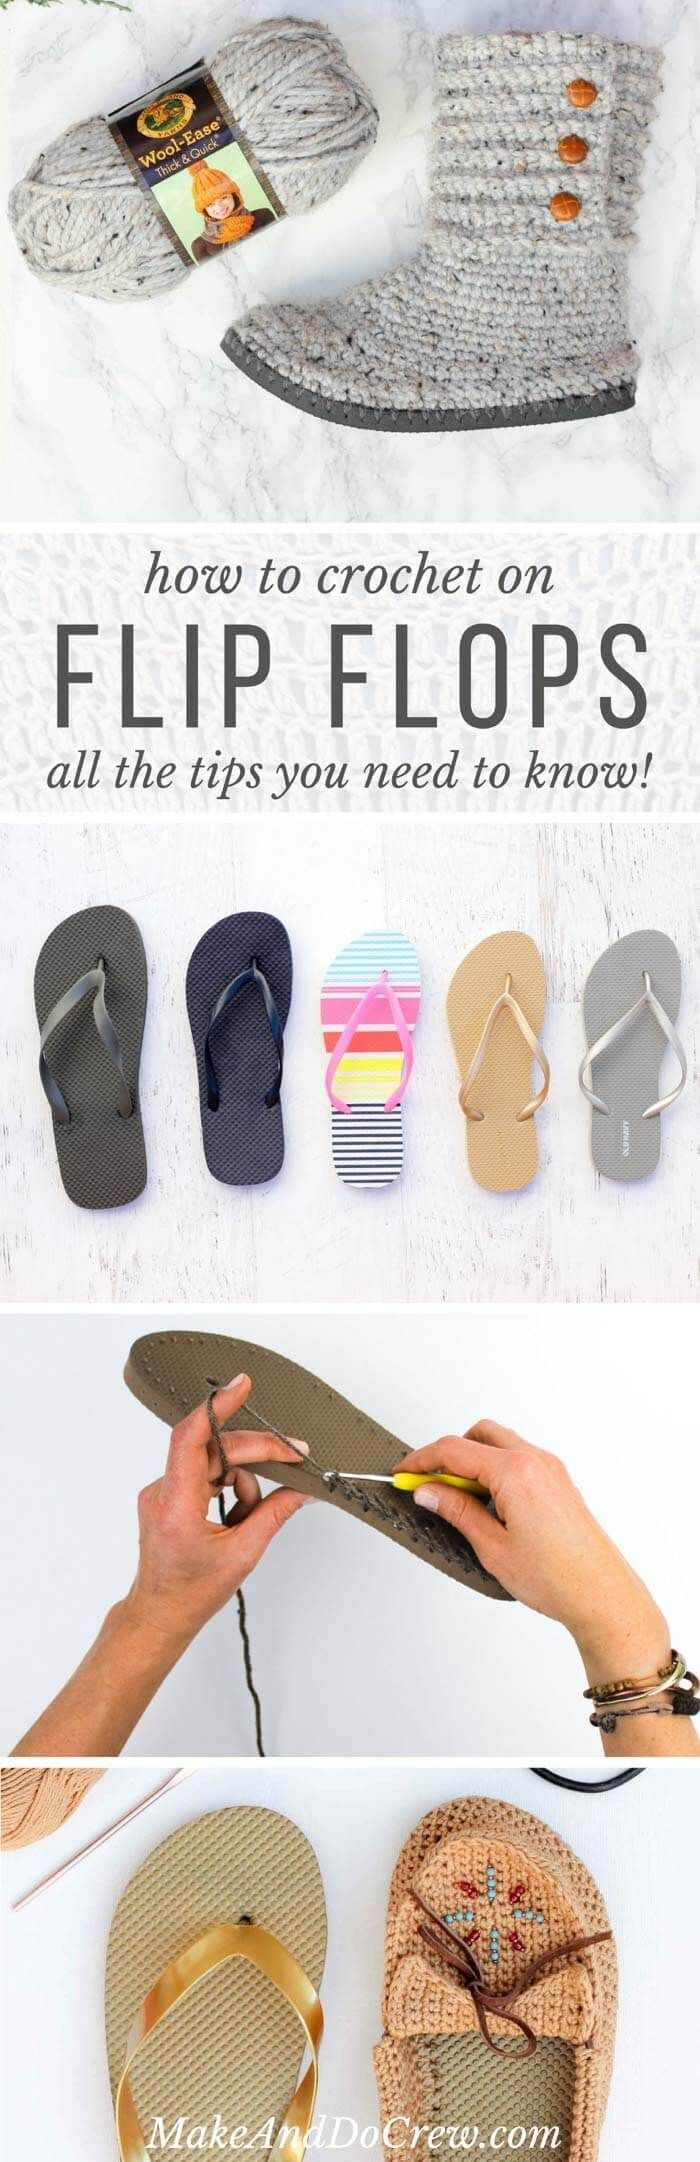 How To Crochet On Flip Flops (And will they fall apart?!) | Tejido ...